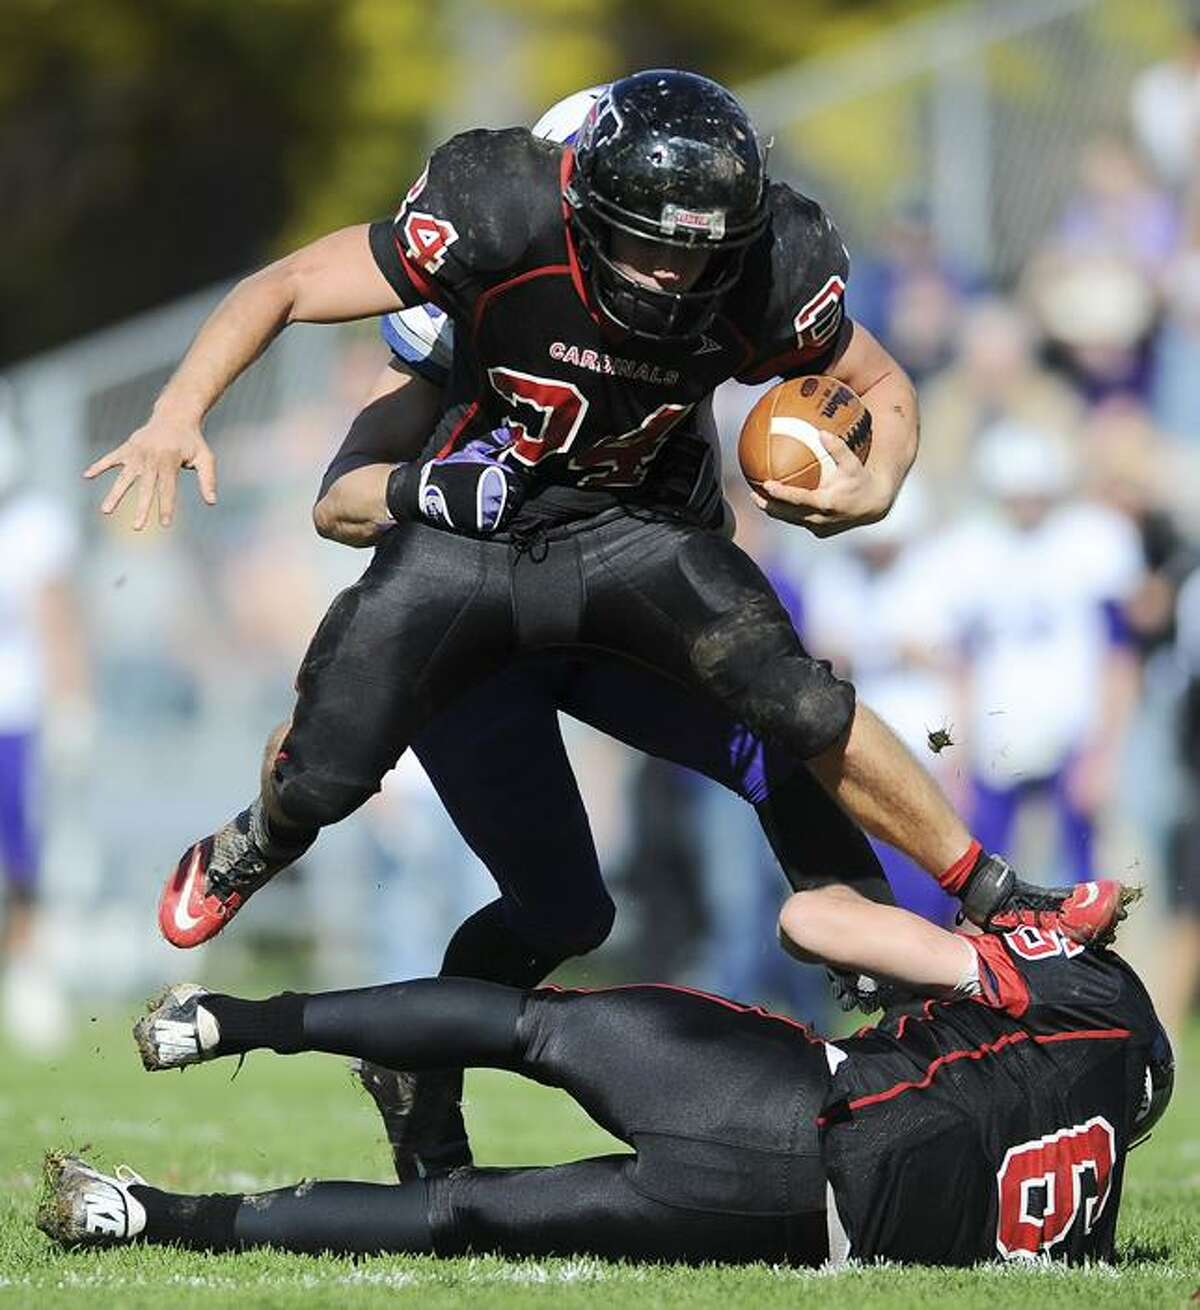 Special to the Press 10.20.12 Donnie Cimino, #11, nearly intercepts an Amherst pass in the third quarter of a 17-9 Amherst win Saturday at Andrus Field.